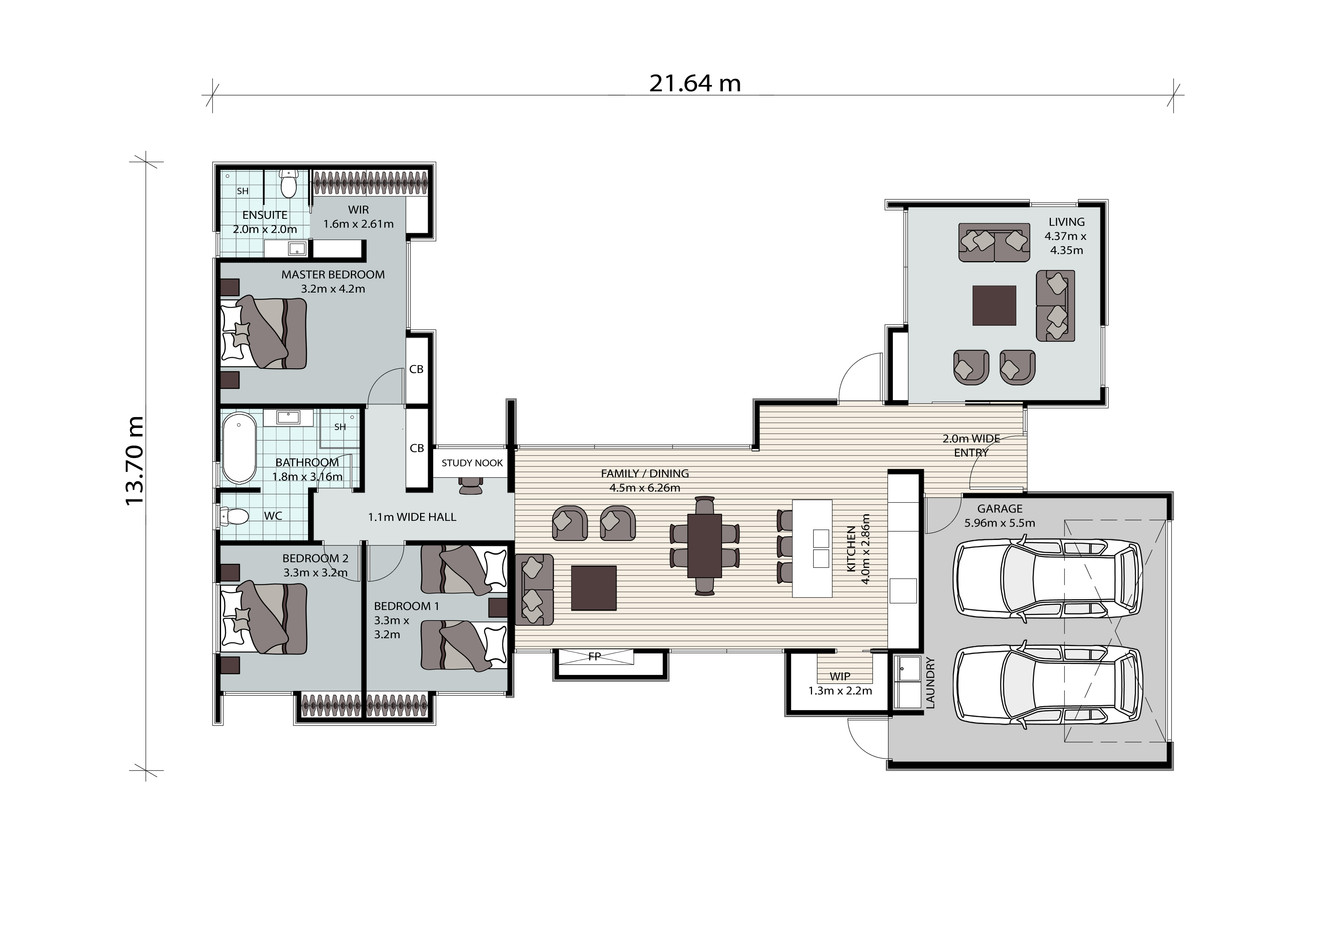 Lot 20 Cloverden Halswell Showhome_Floor